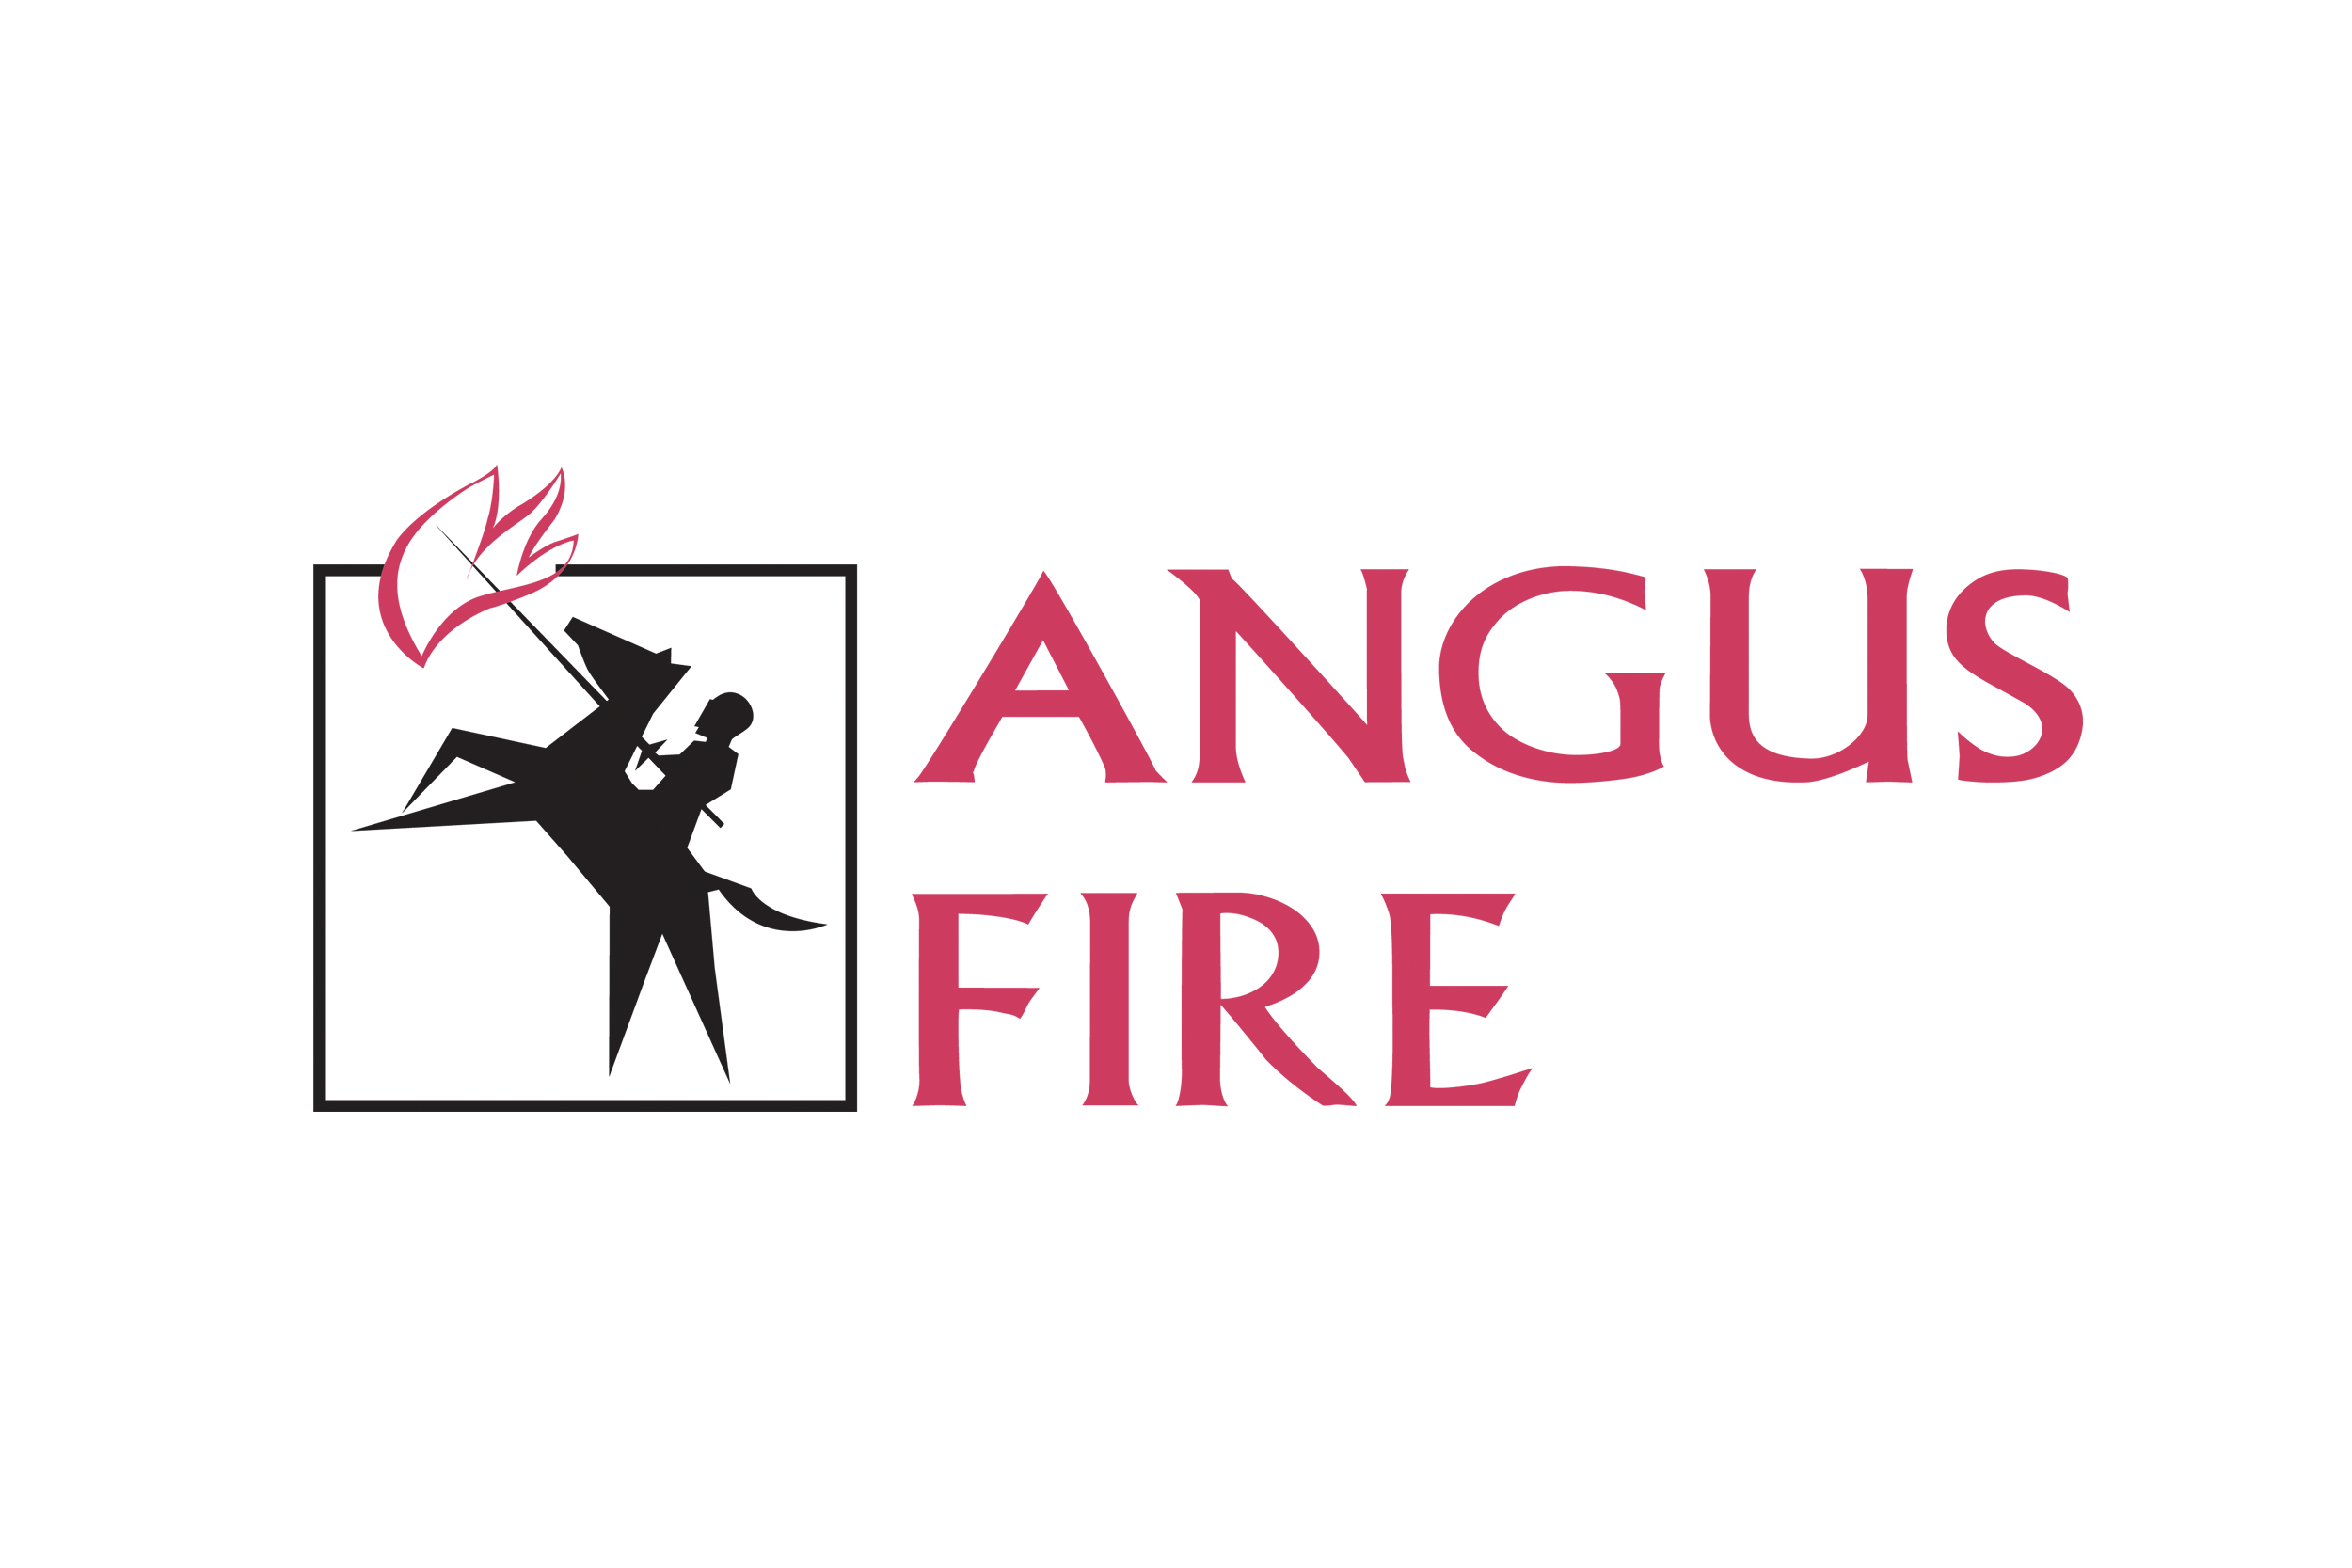 angus fire.png